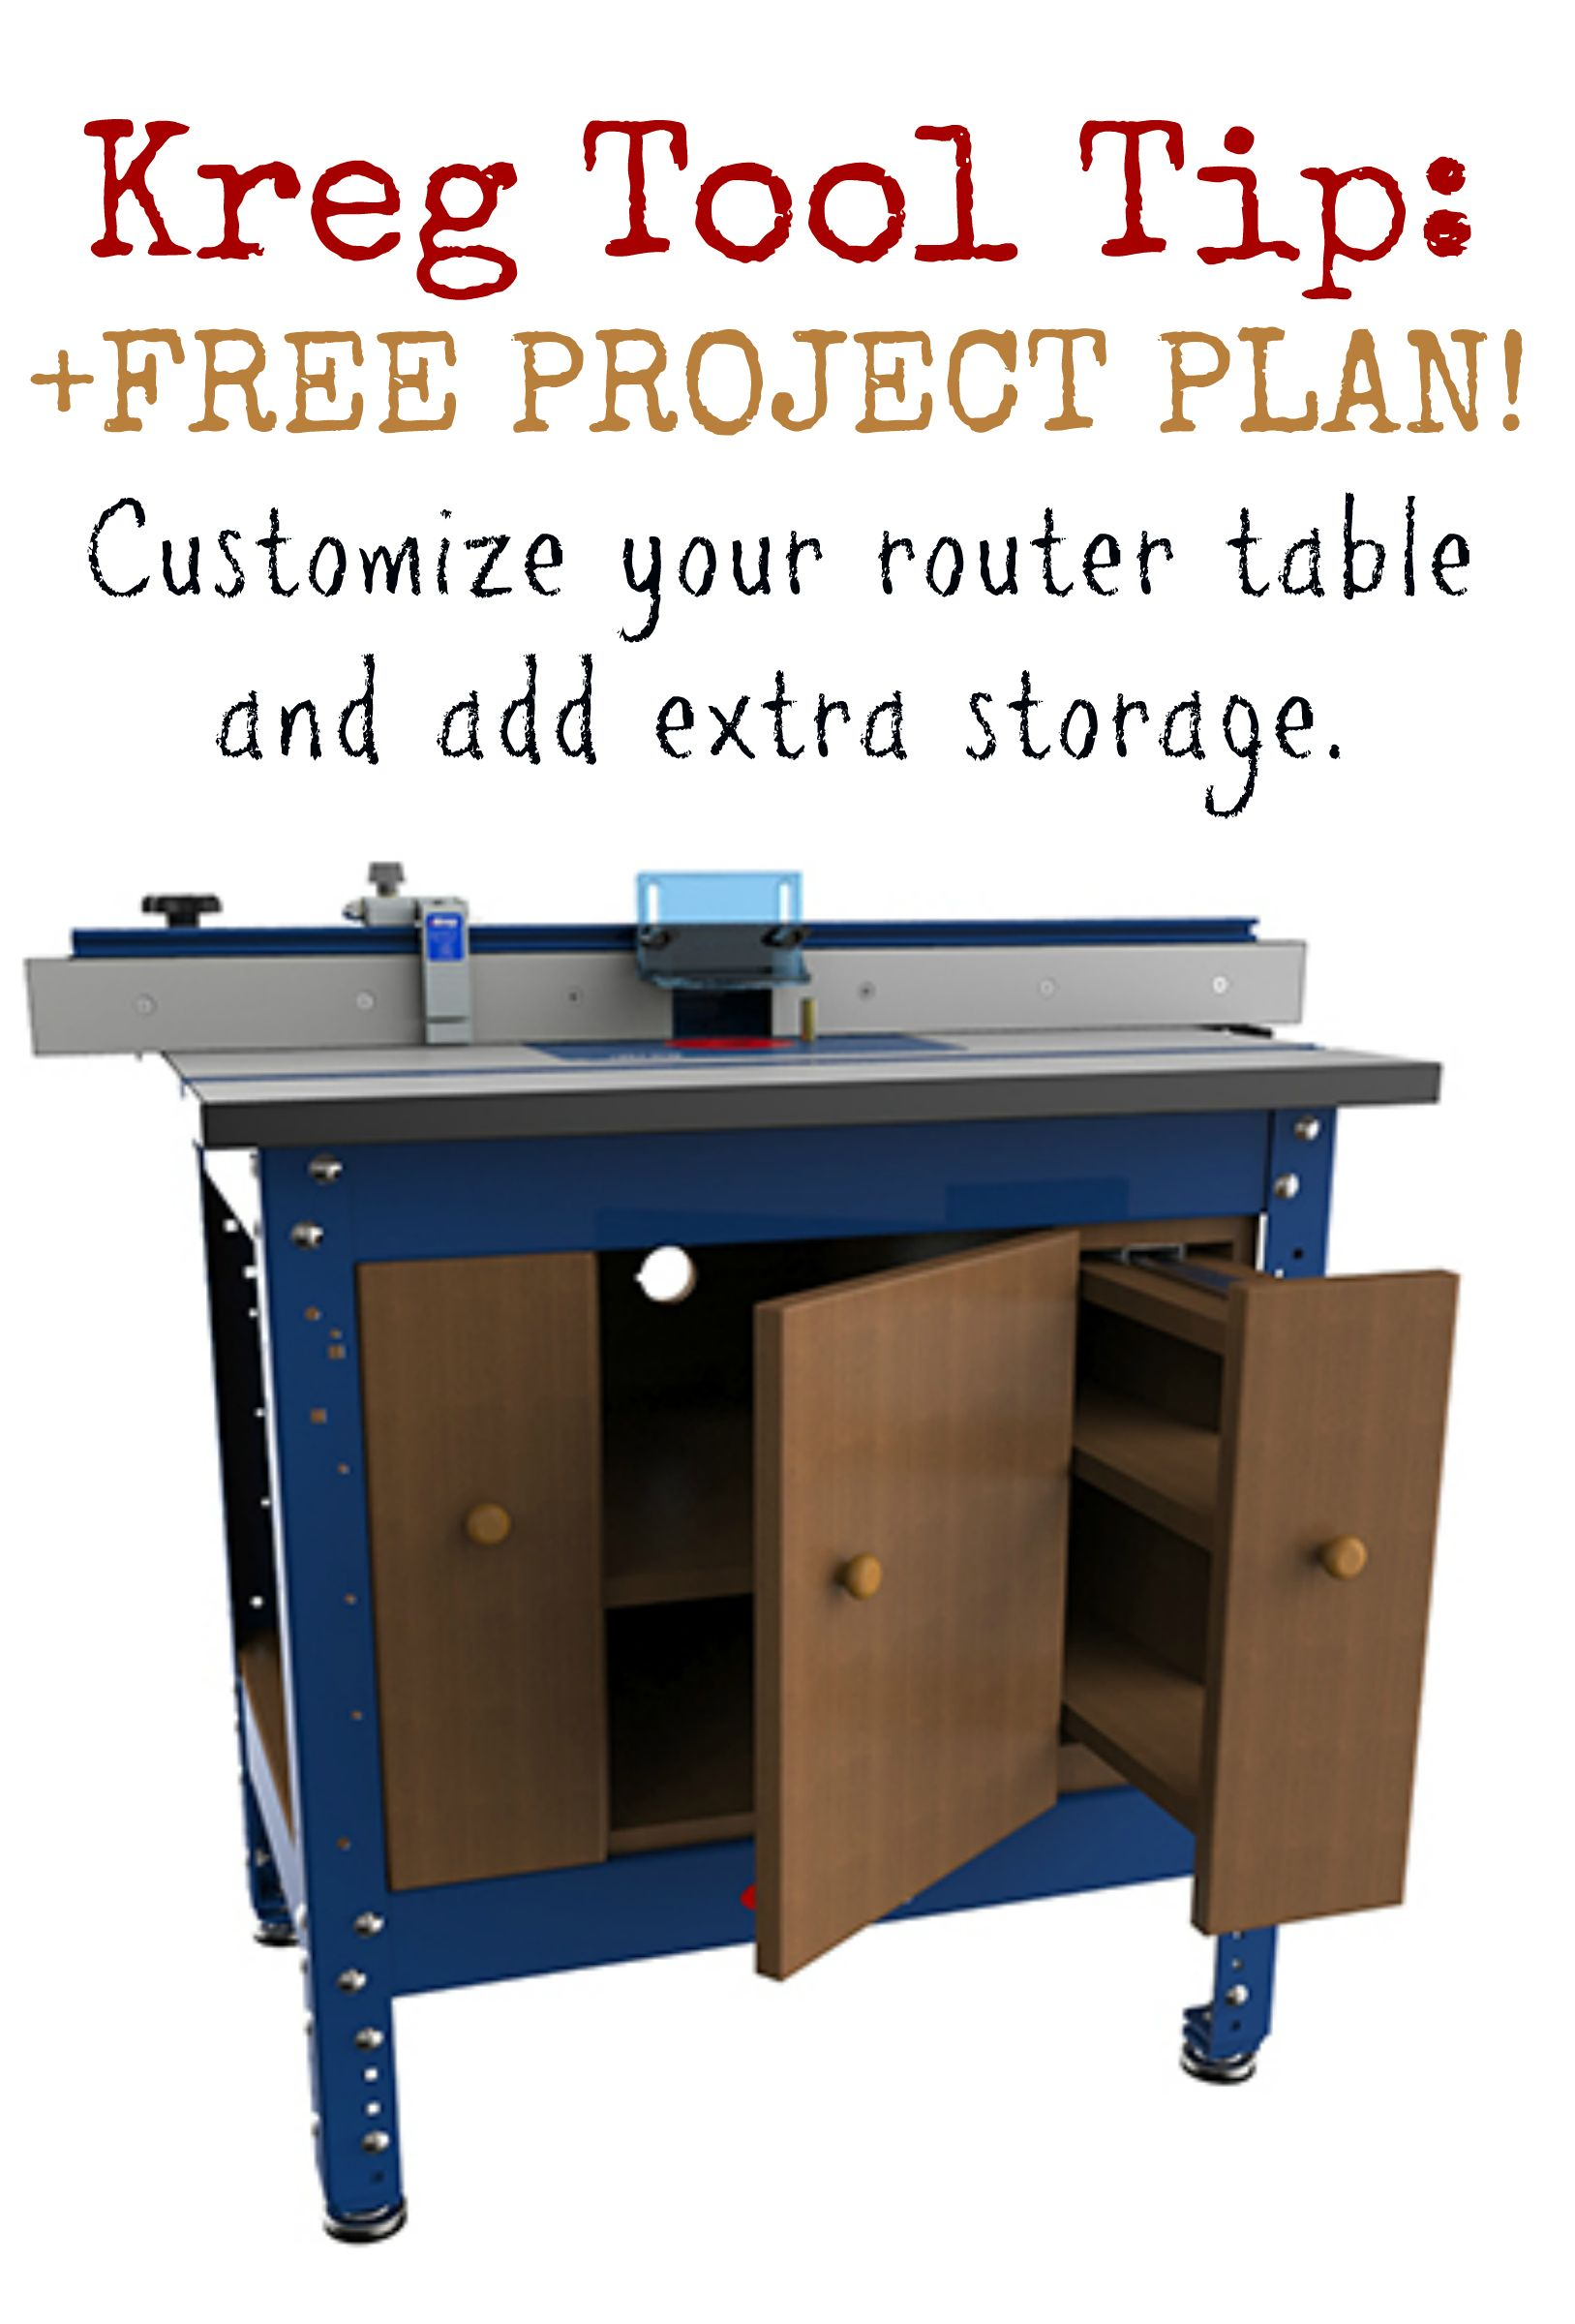 Free router table cabinet plans microfinanceindia tuesday tool tip free project plan customize add extra storage keyboard keysfo Image collections